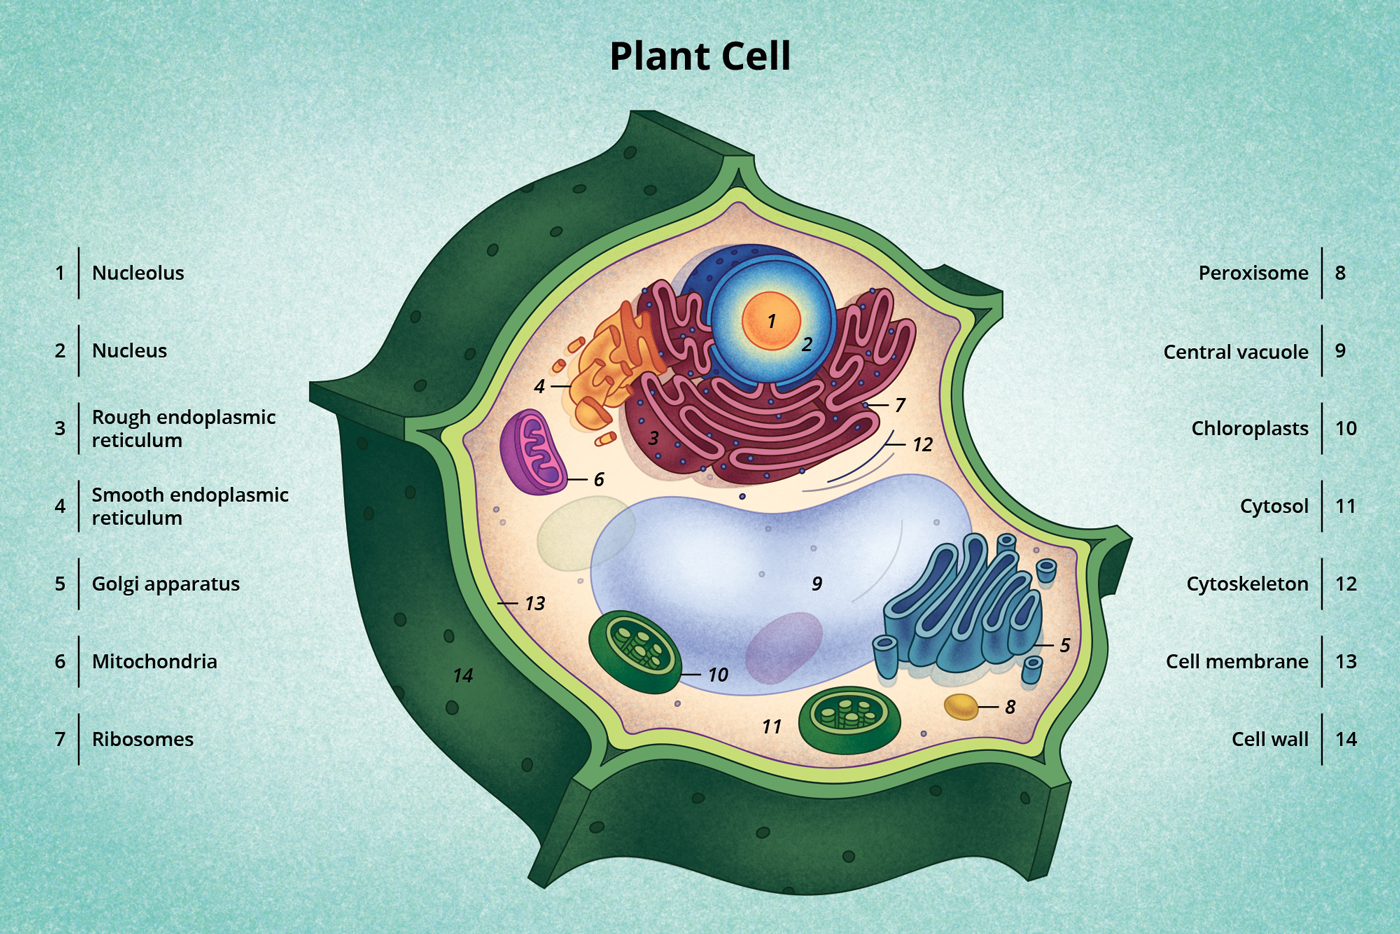 Discovery And Structure Of Cells Biology Visionlearning Cell Diagram Labeled Similarities Between Prokaryotic Eukaryotic Figure 6 A Typical Plant